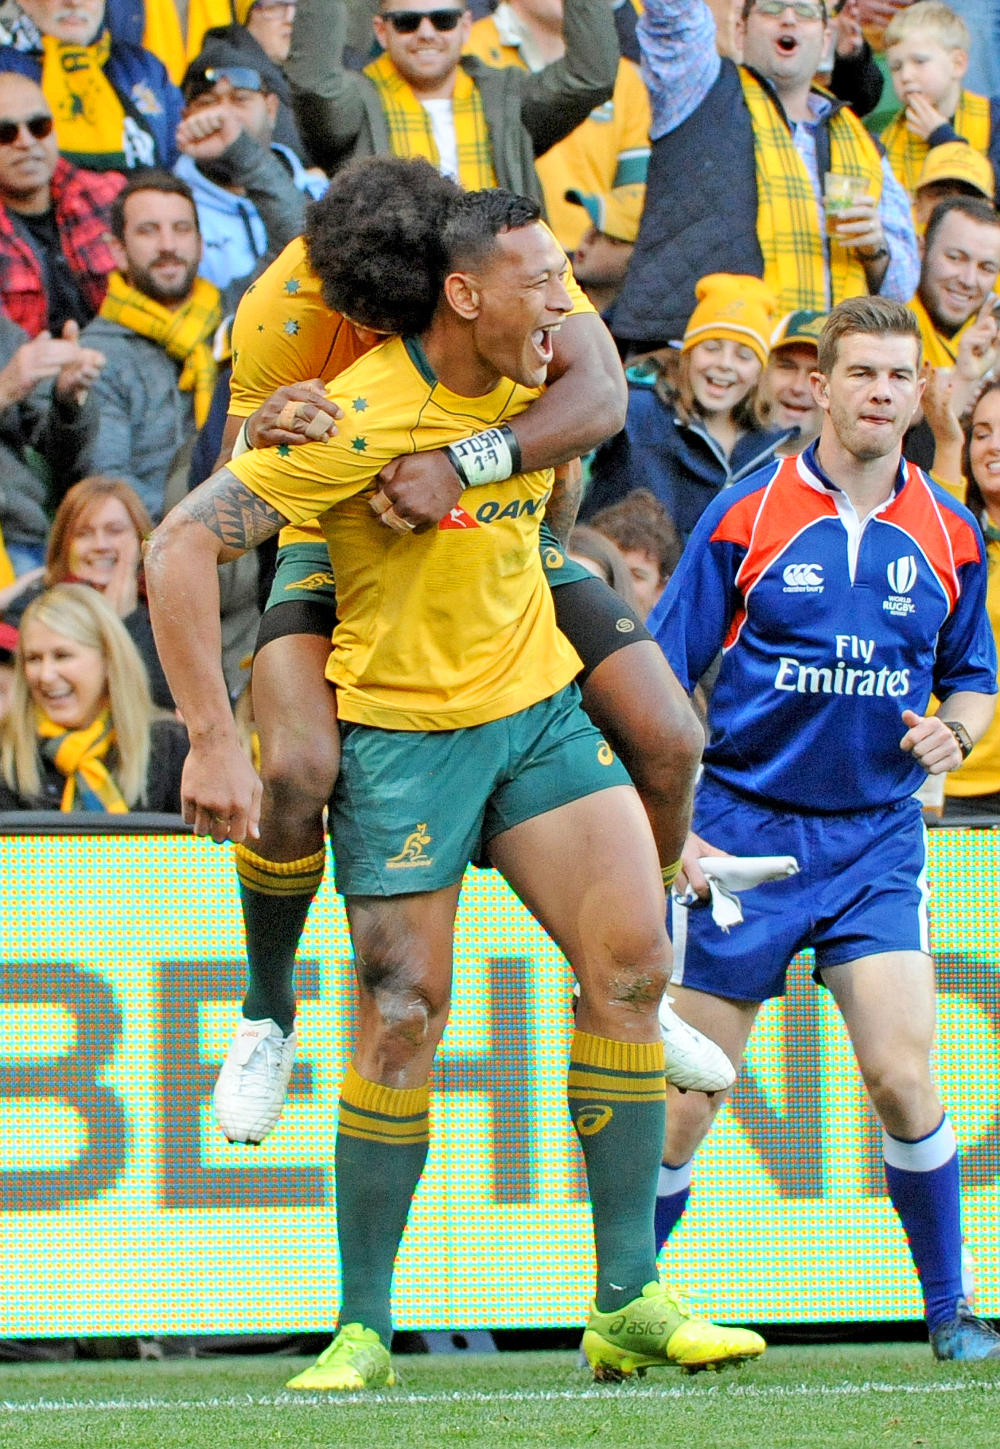 Israel Folau Wallabies Australian Rugby Union 2017 tall